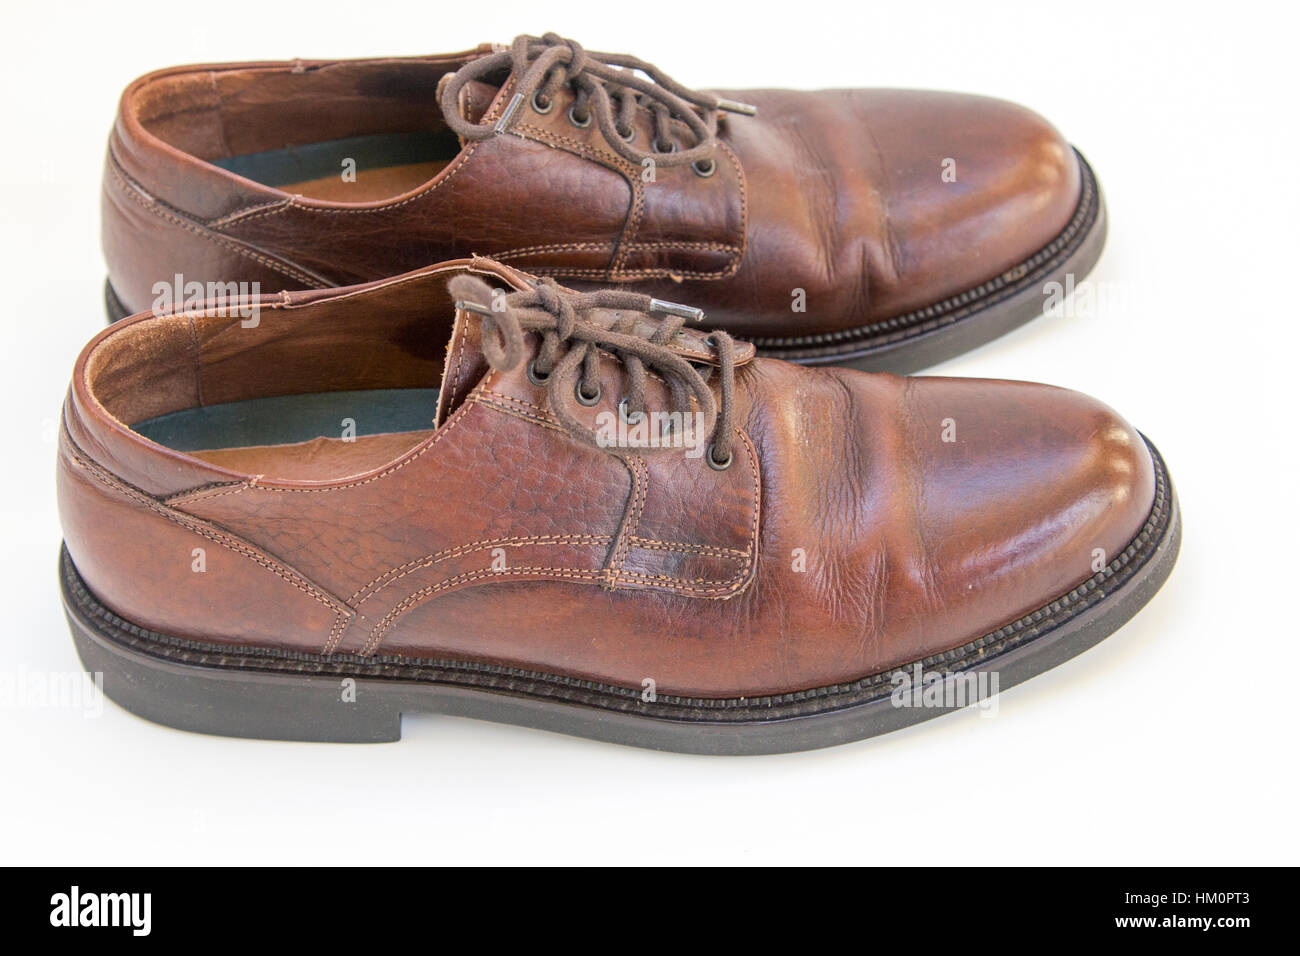 Worn Shoes - Stock Image